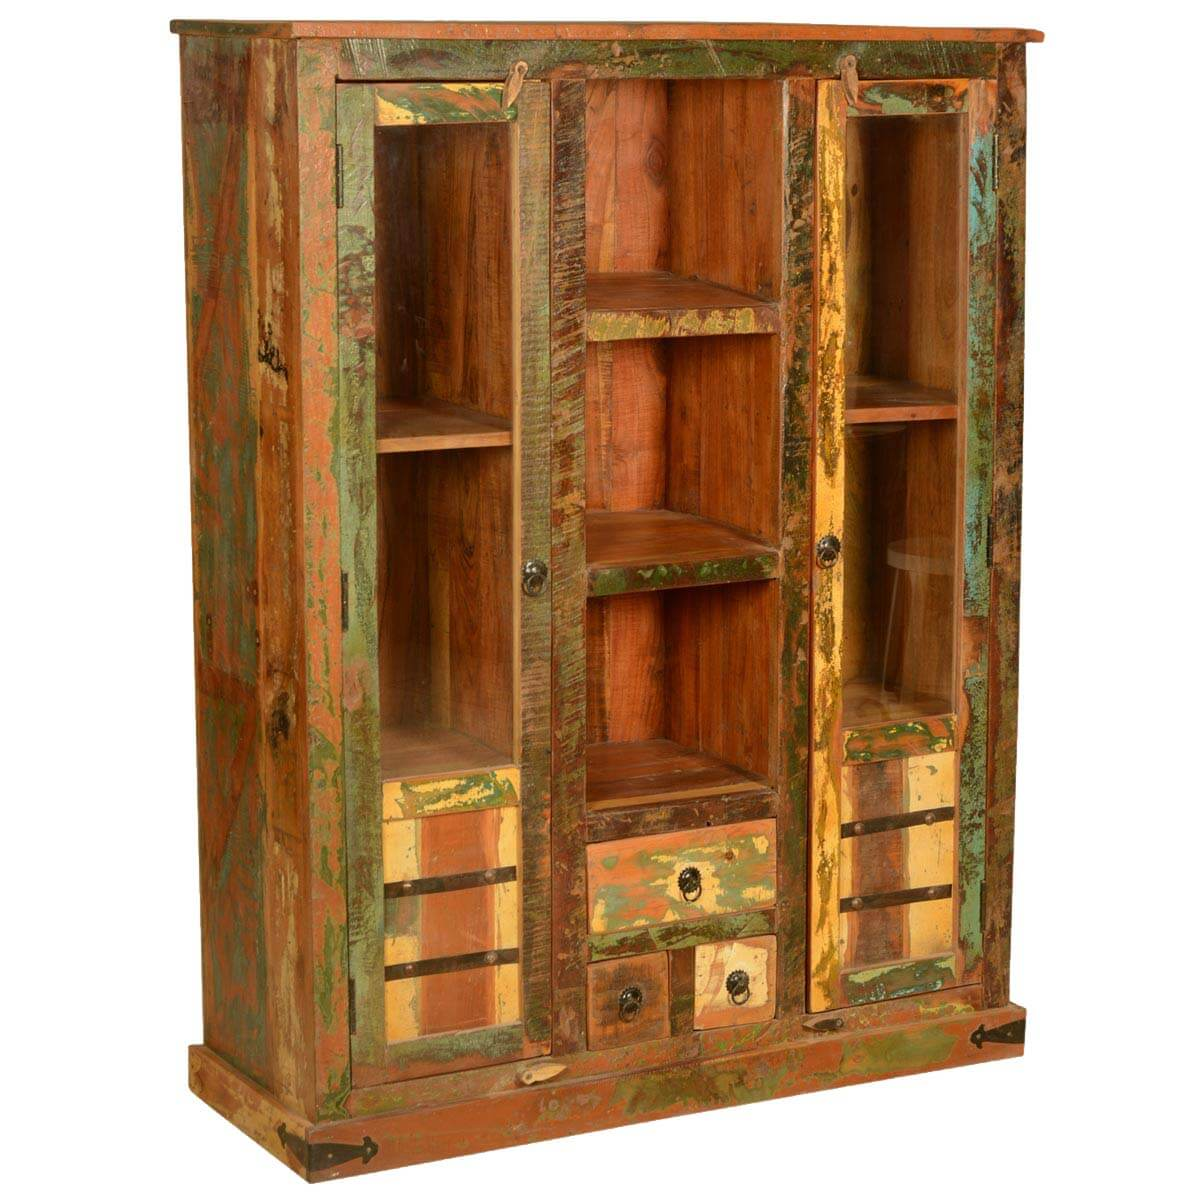 1200 #BF790C  Speckled Rustic Reclaimed Wood Display Cabinet W Glass Doors picture/photo Wood Glass Doors 41591200